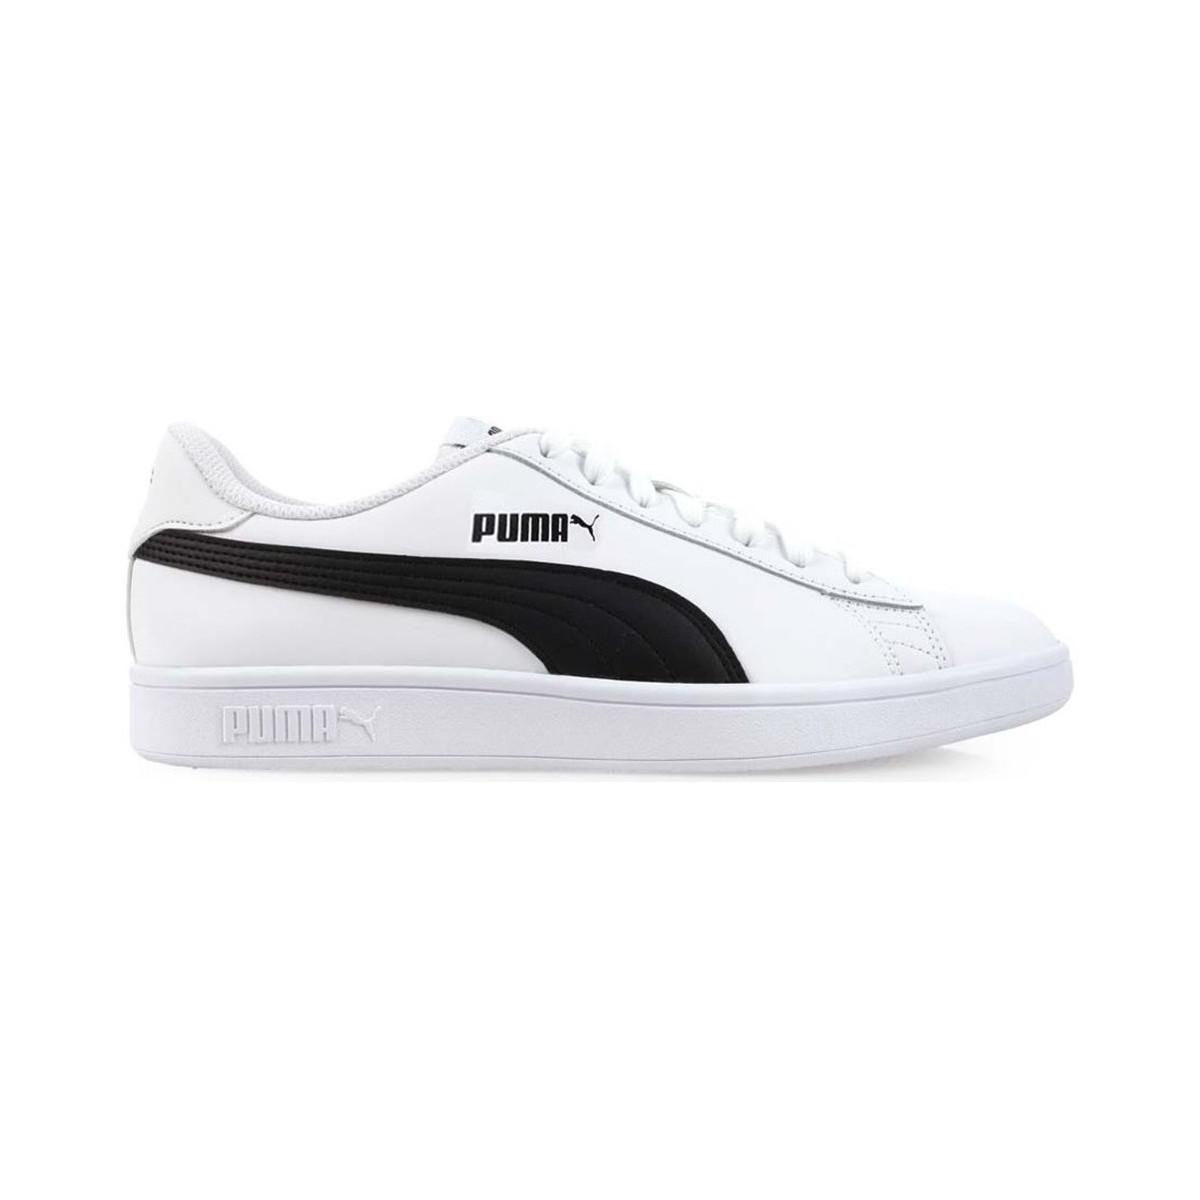 Puma Smash V2 L Men s Shoes (trainers) In White in White for Men - Lyst 8511b349f